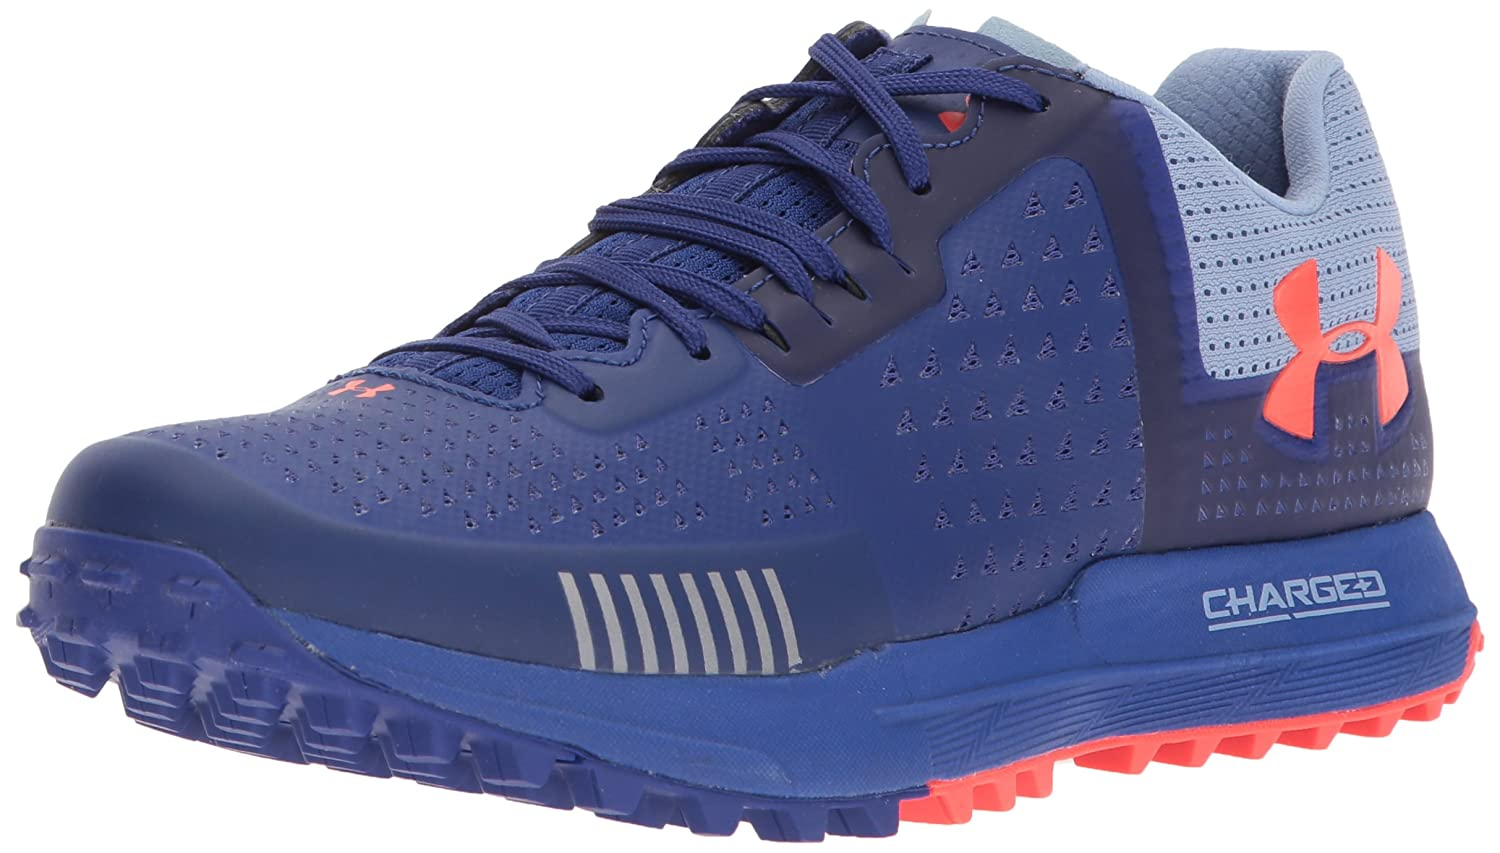 Under Armour Women's Horizon RTT Hiking Shoe B0714DJ9K4 8 M US|Formation Blue (500)/Chambray Blue